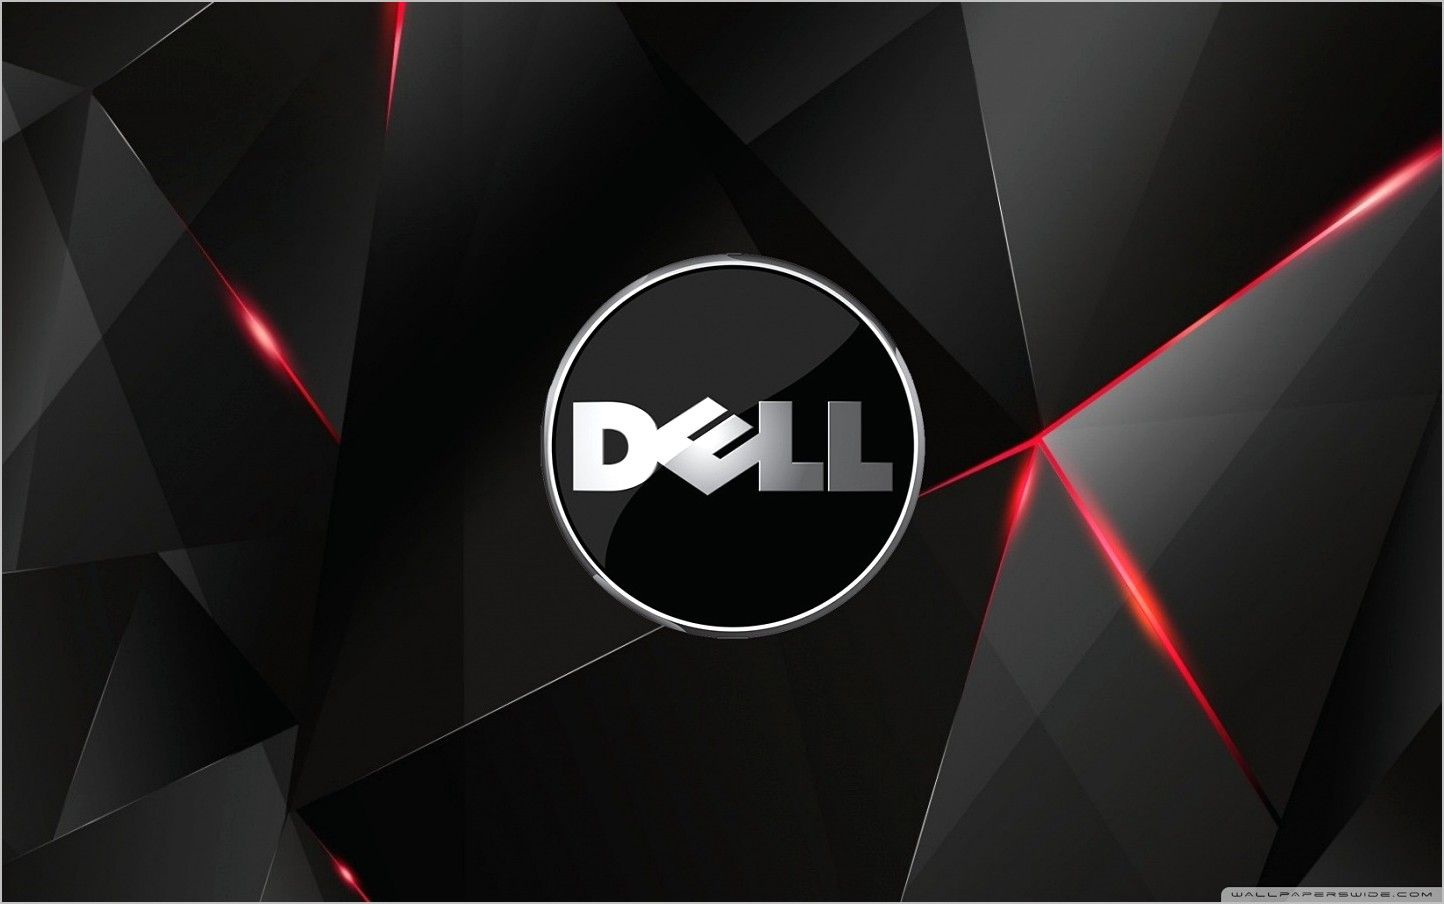 Dell Laptop Wallpaper 4k